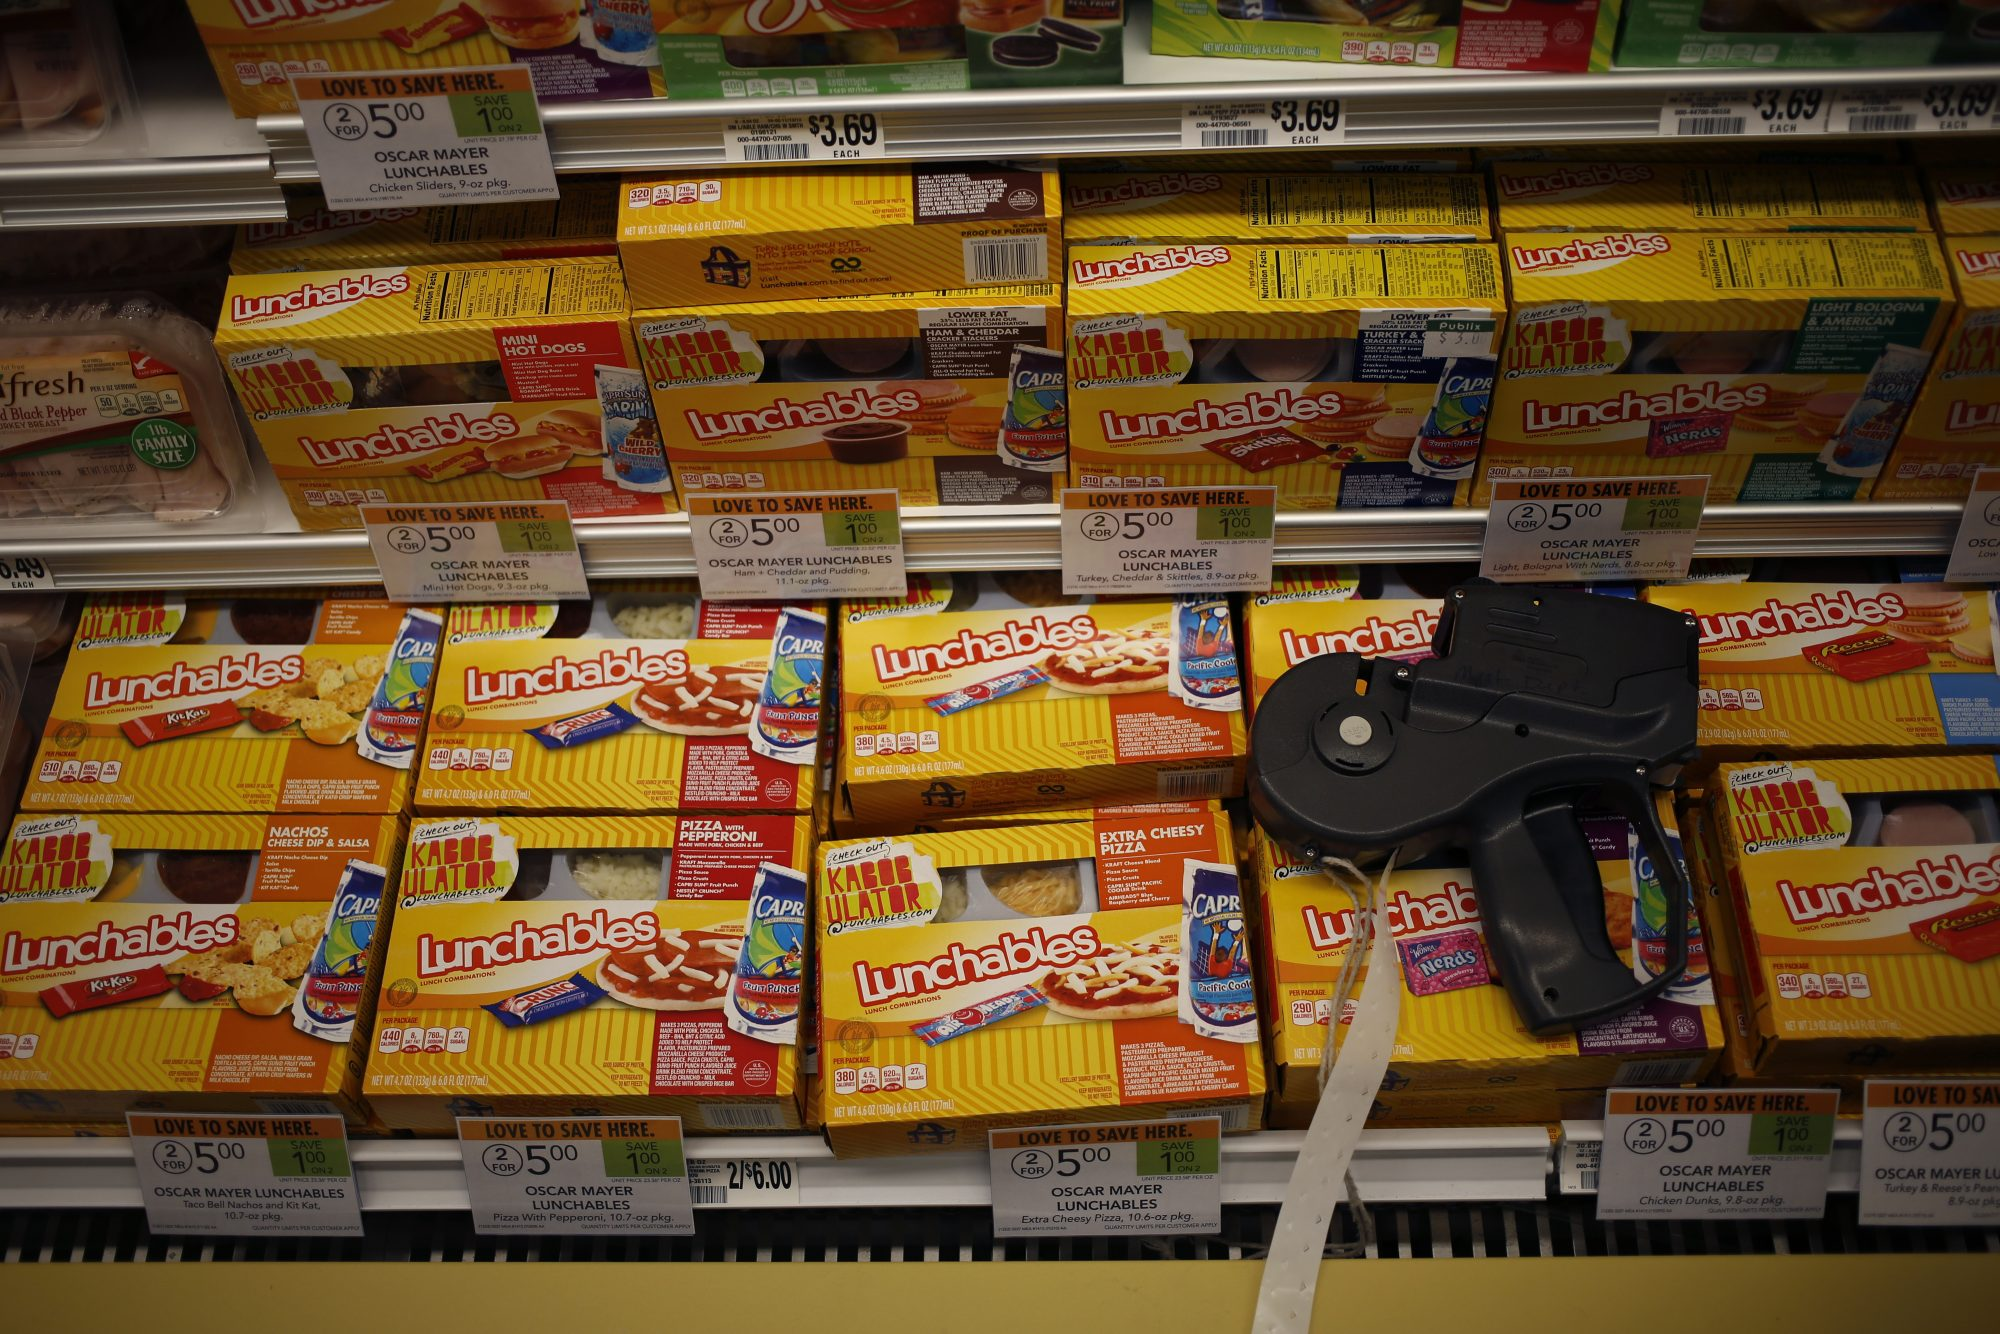 An image of Lunchables in a store.